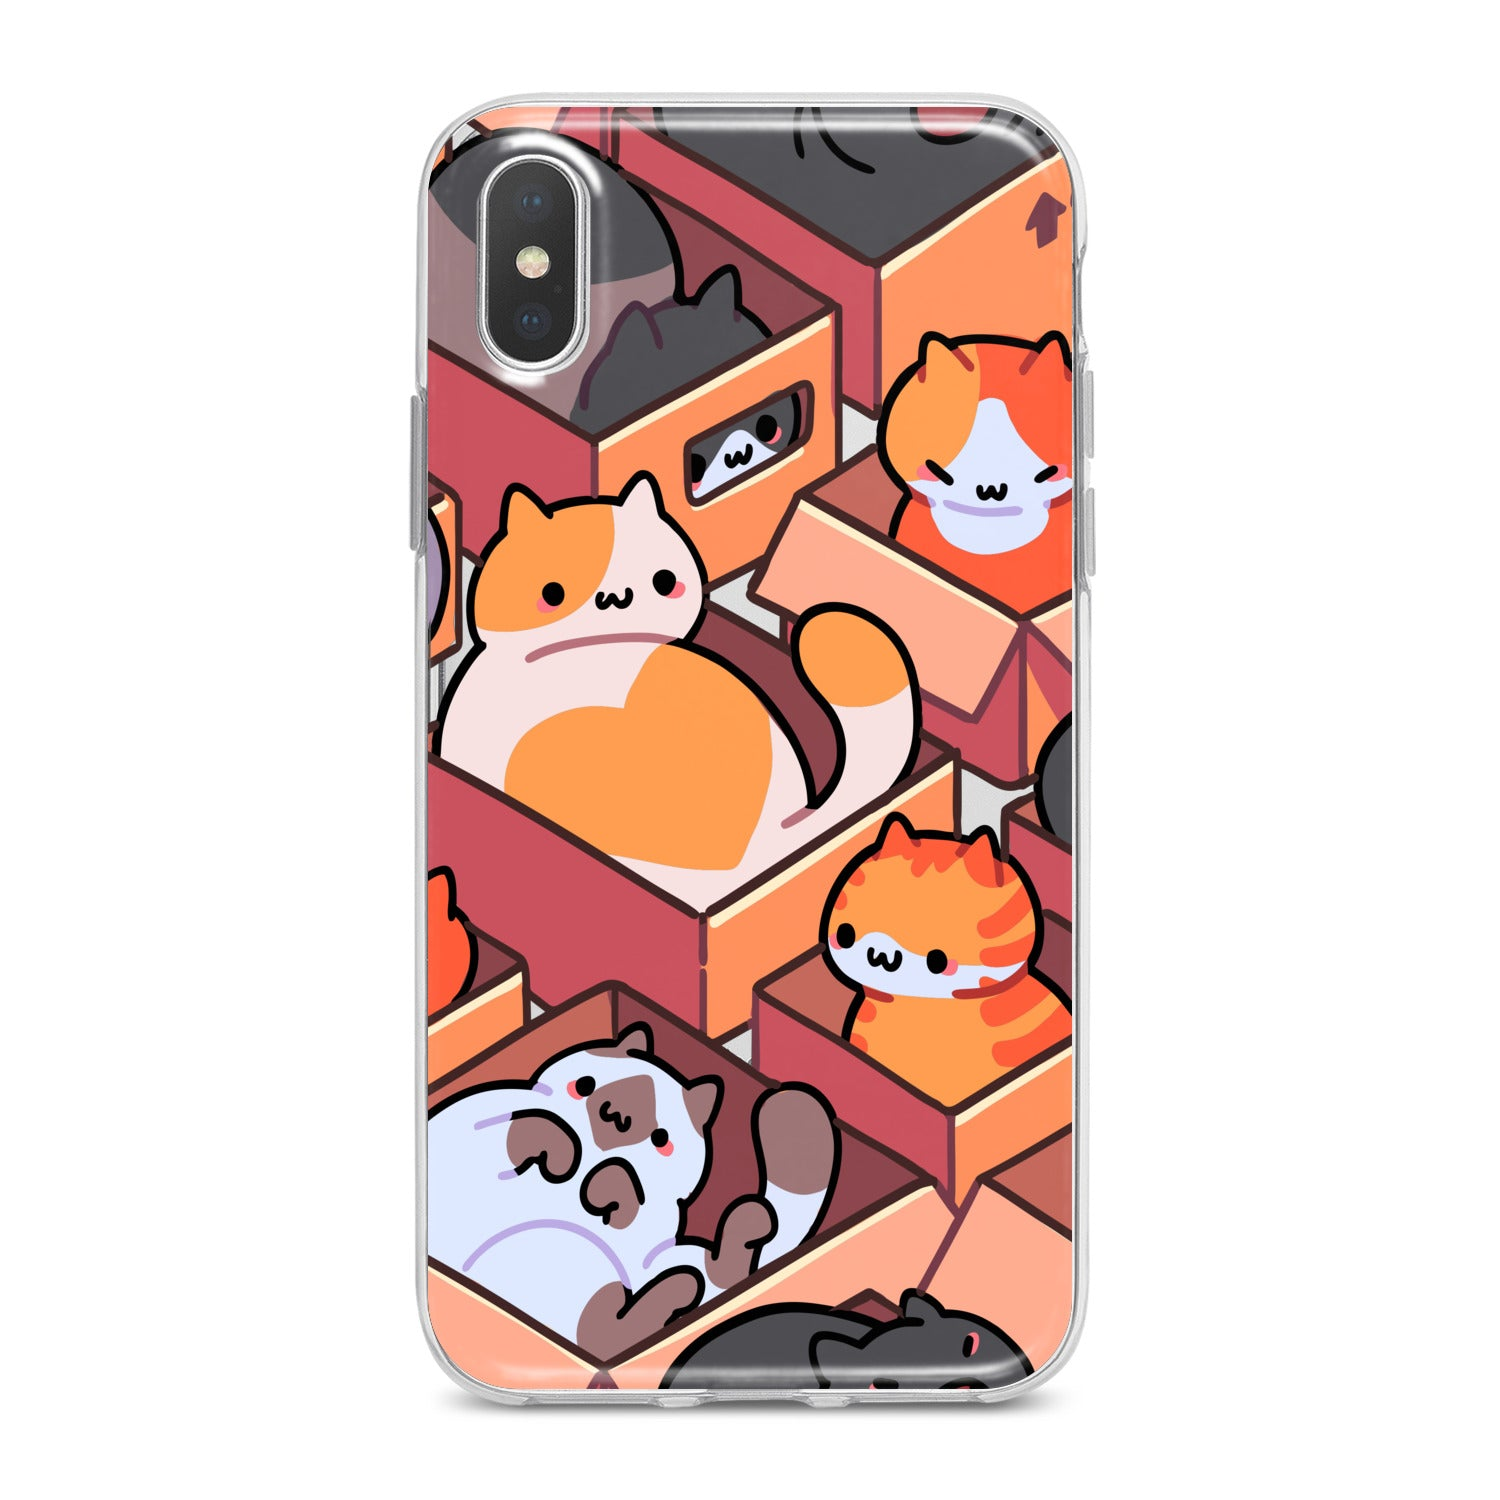 Lex Altern Cats in Boxes Phone Case for your iPhone & Android phone.